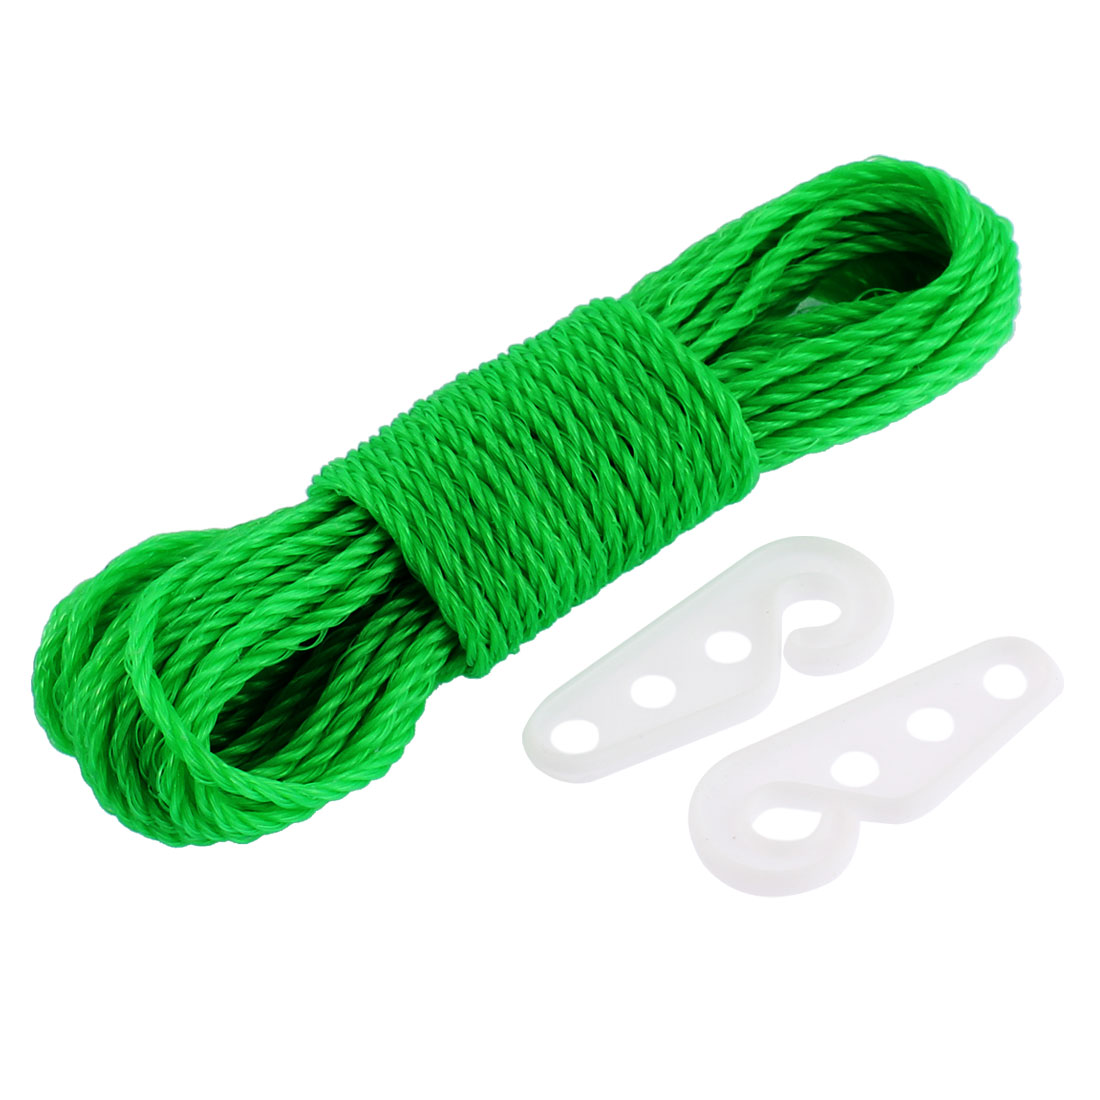 Outdoor Nylon Clothesline Clothes Rope 10M 33Ft Long Green